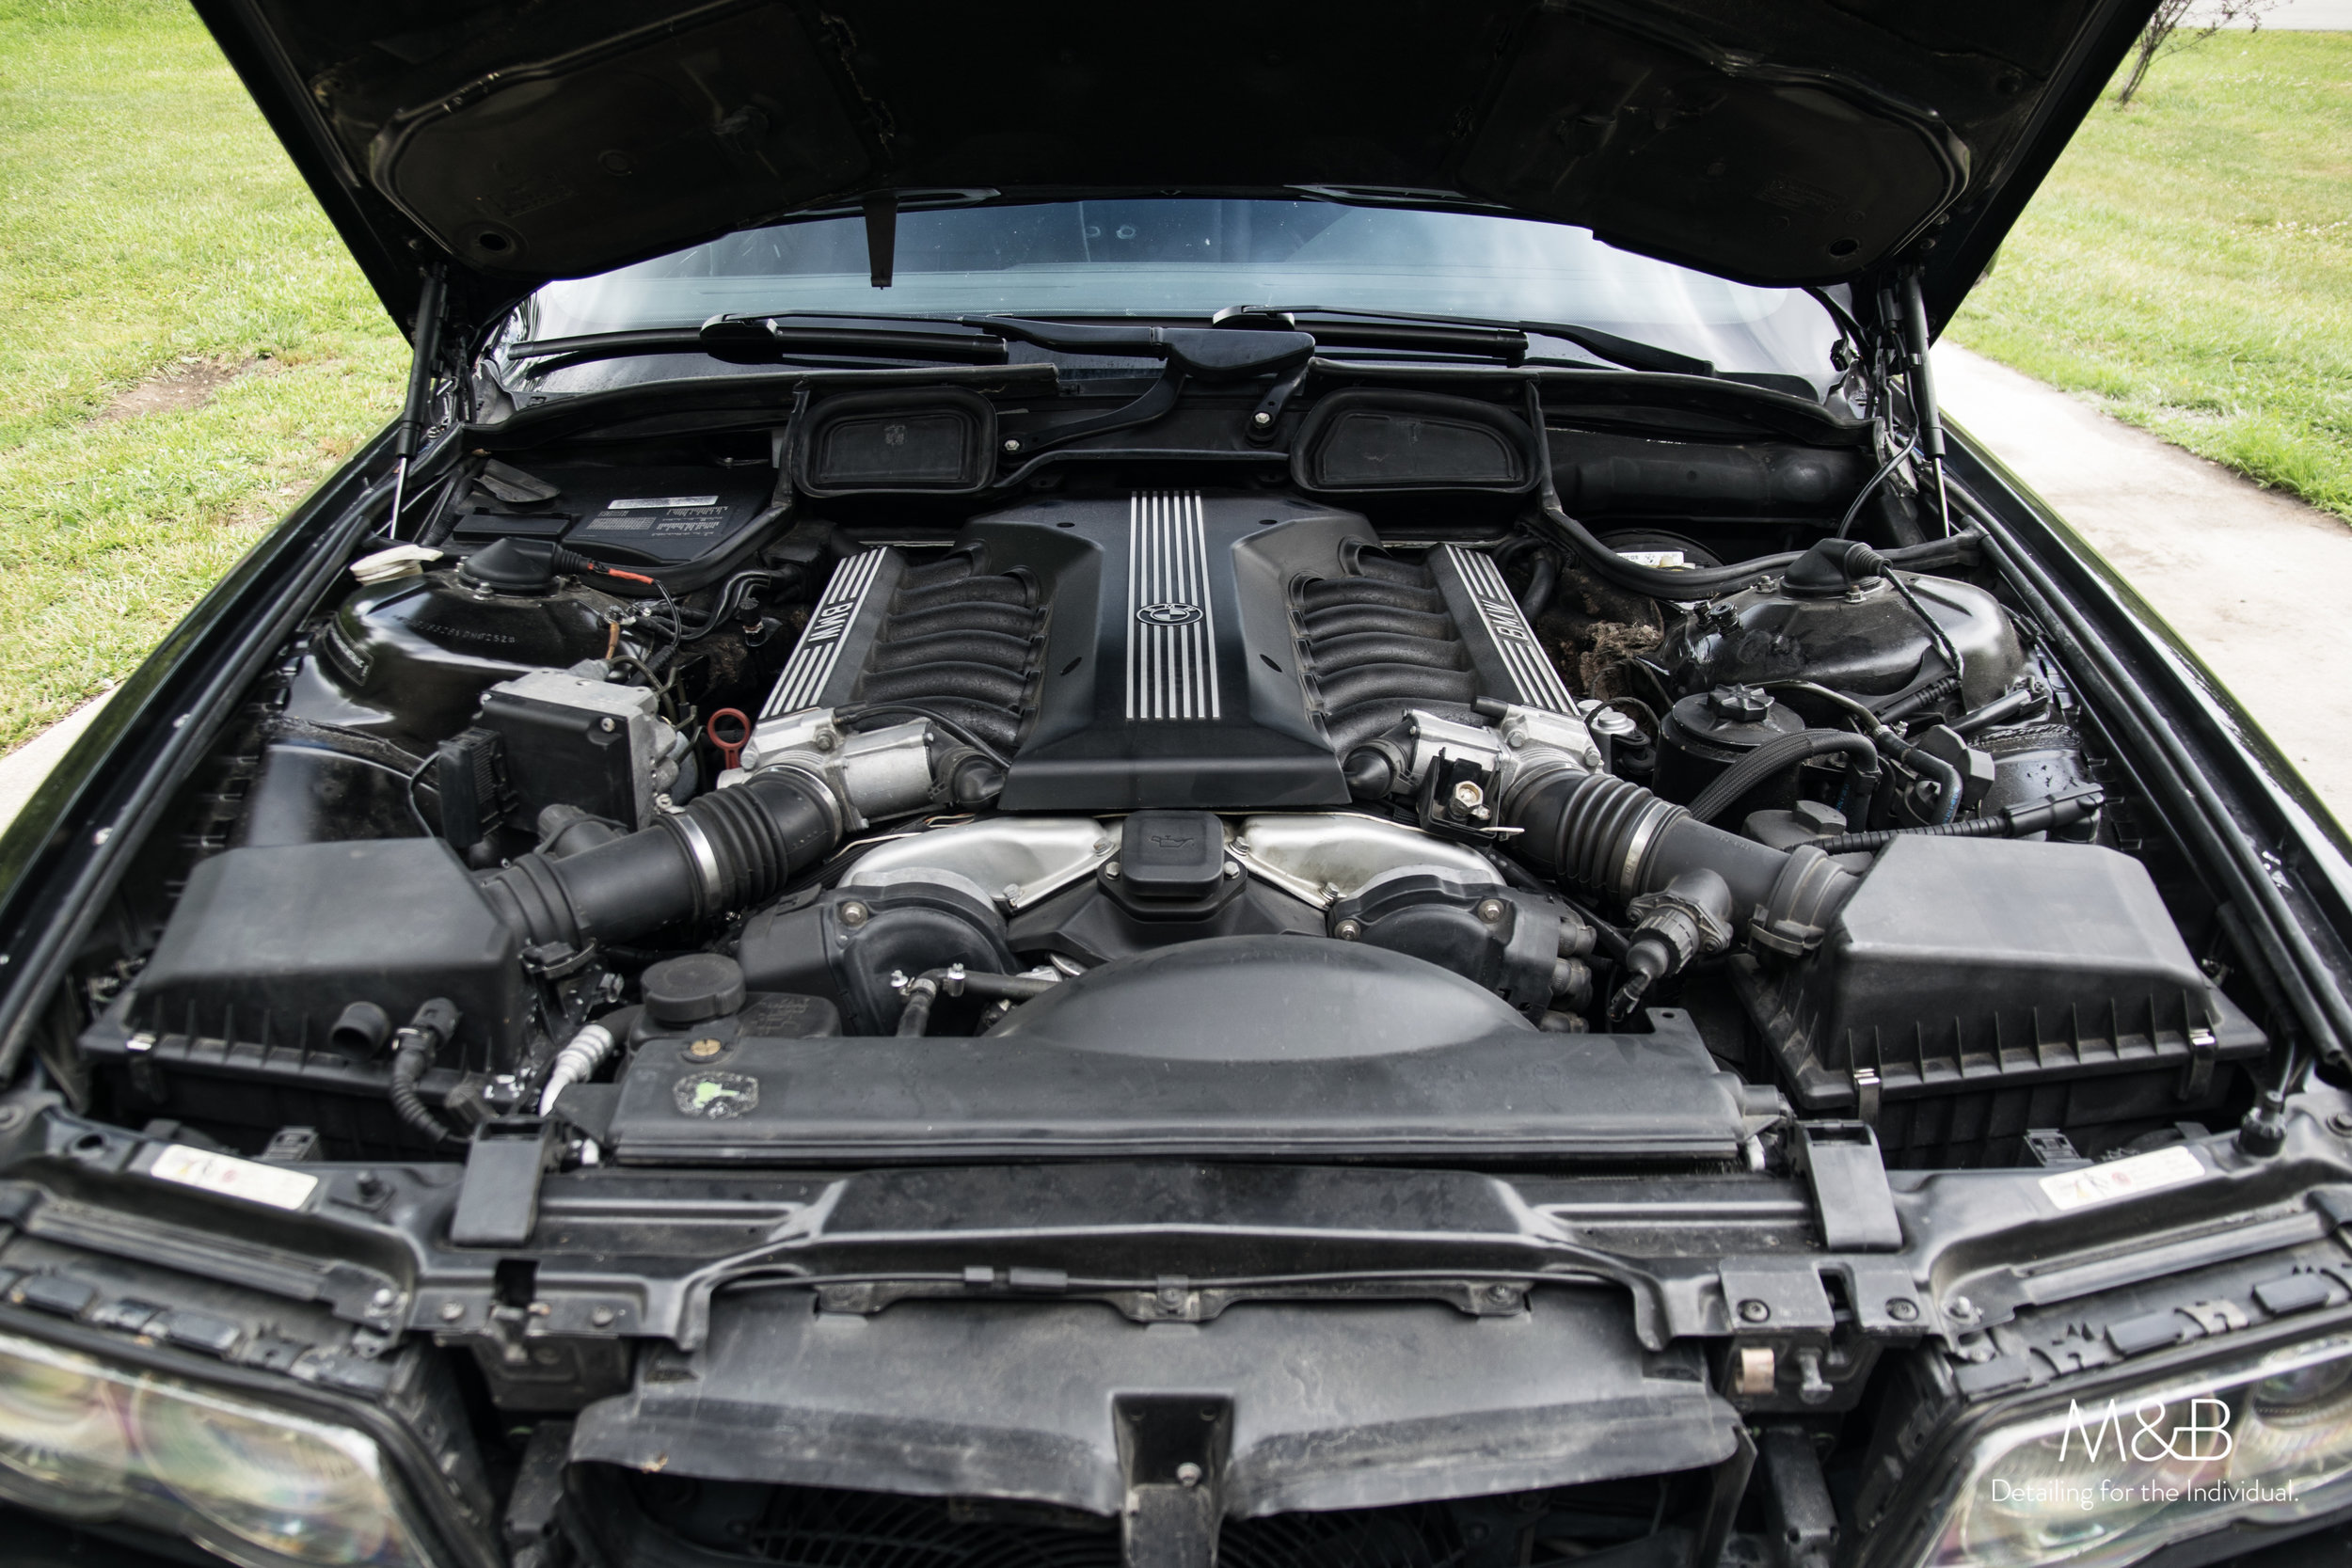 Not awful, but not good enough. Take a walk with us as we get this engine bay clean!